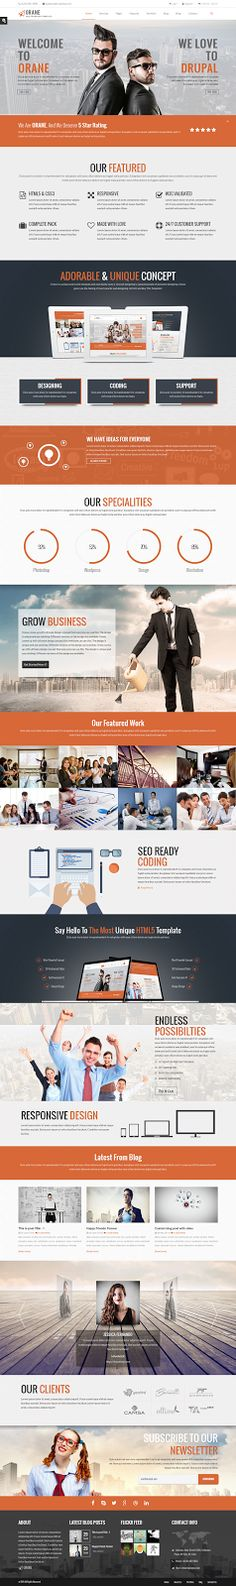 Orane is a multipurpose #Drupal theme for all kinds of business such as #creative or digital agency, photo studio, small business, large business or #freelancers.